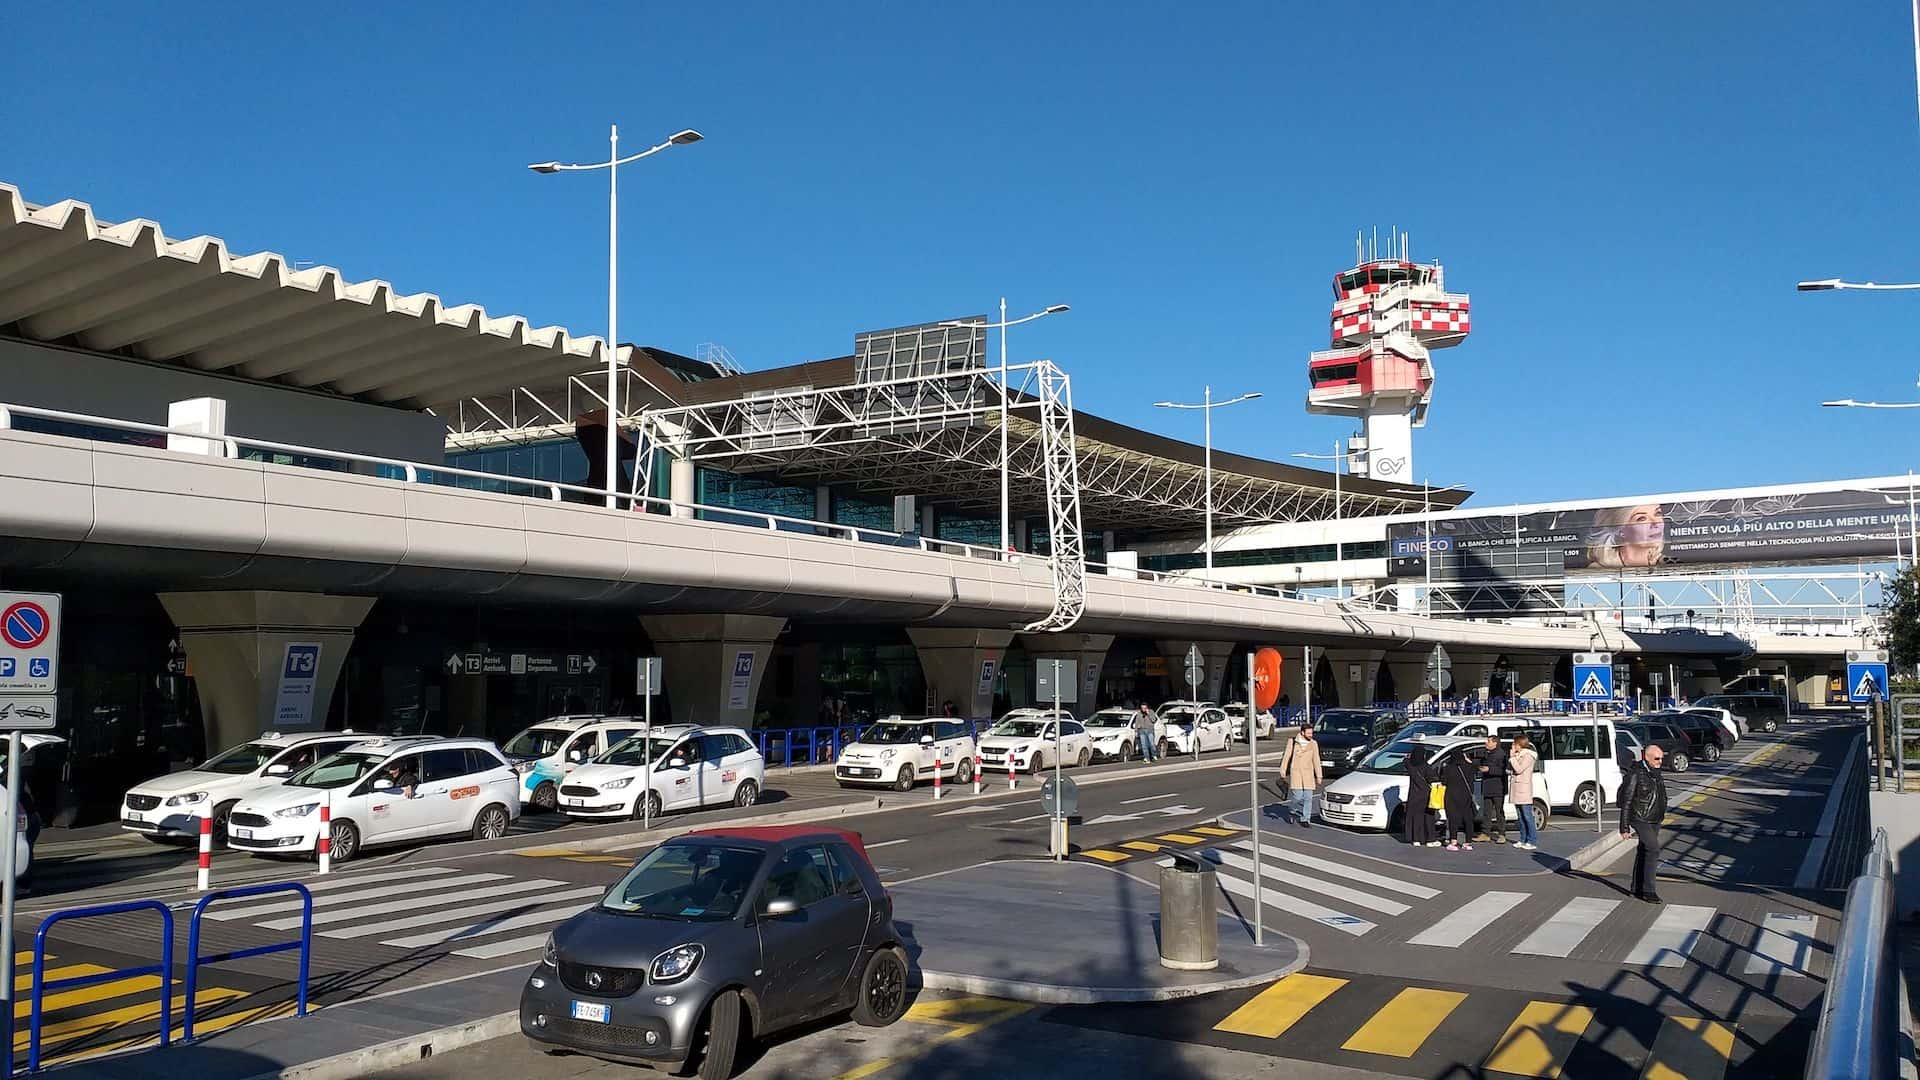 Rome airport taxi rank